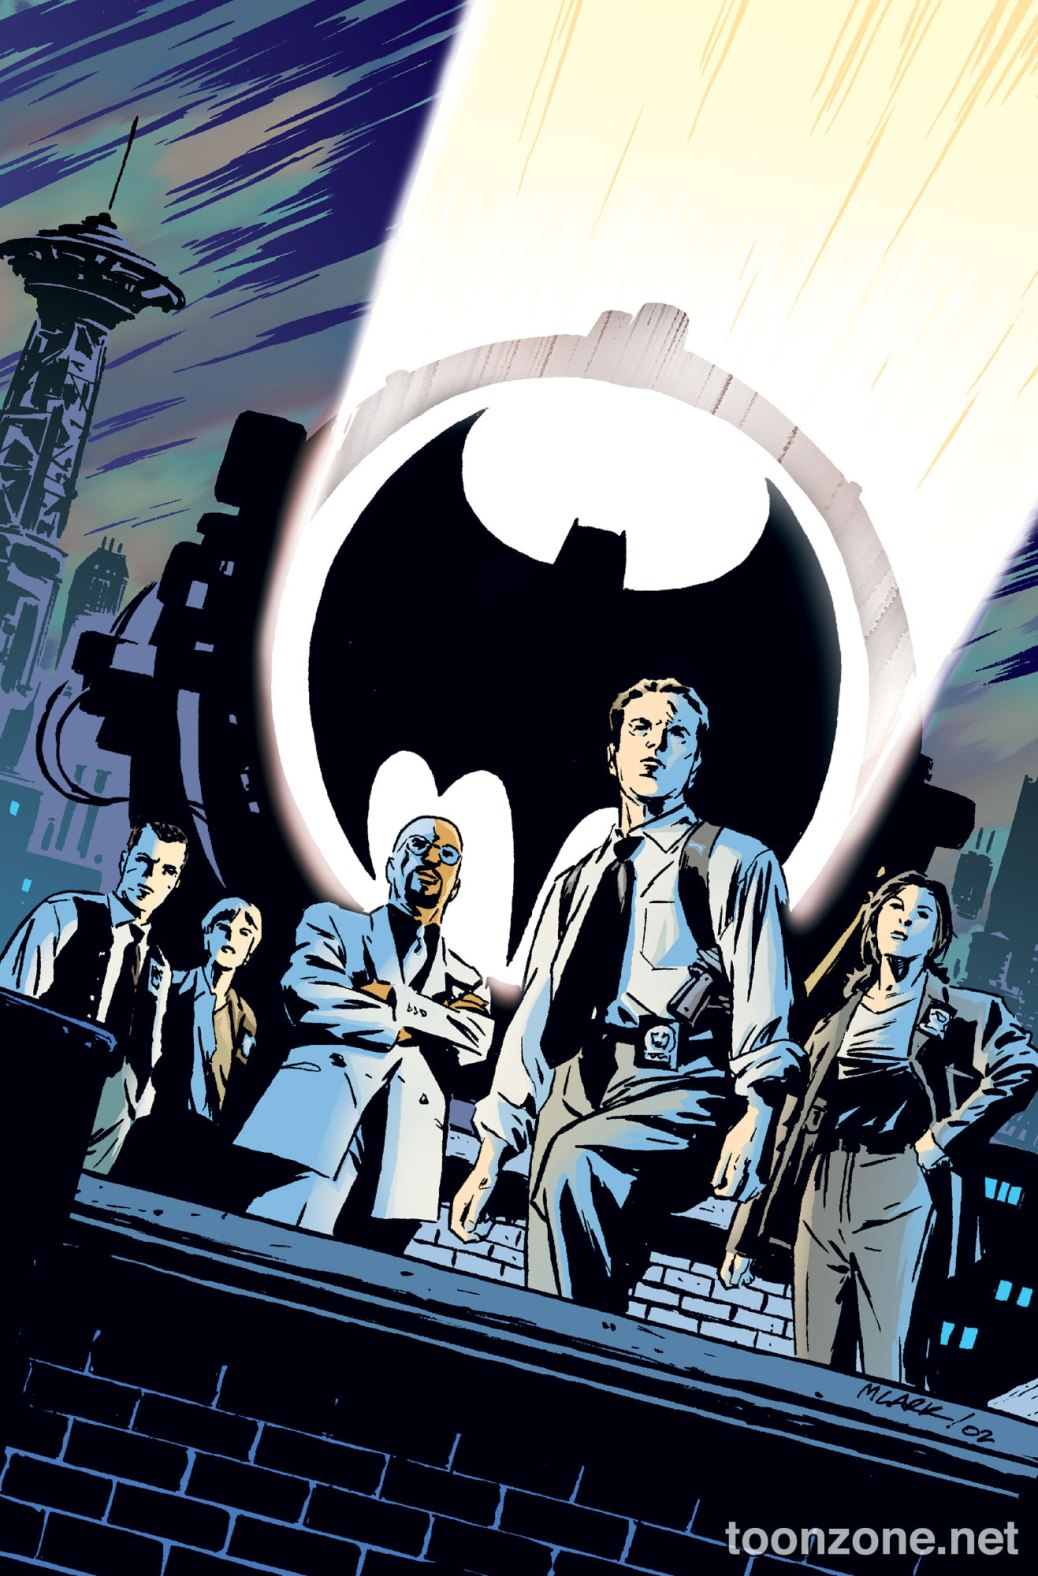 GothamCentralfeatured